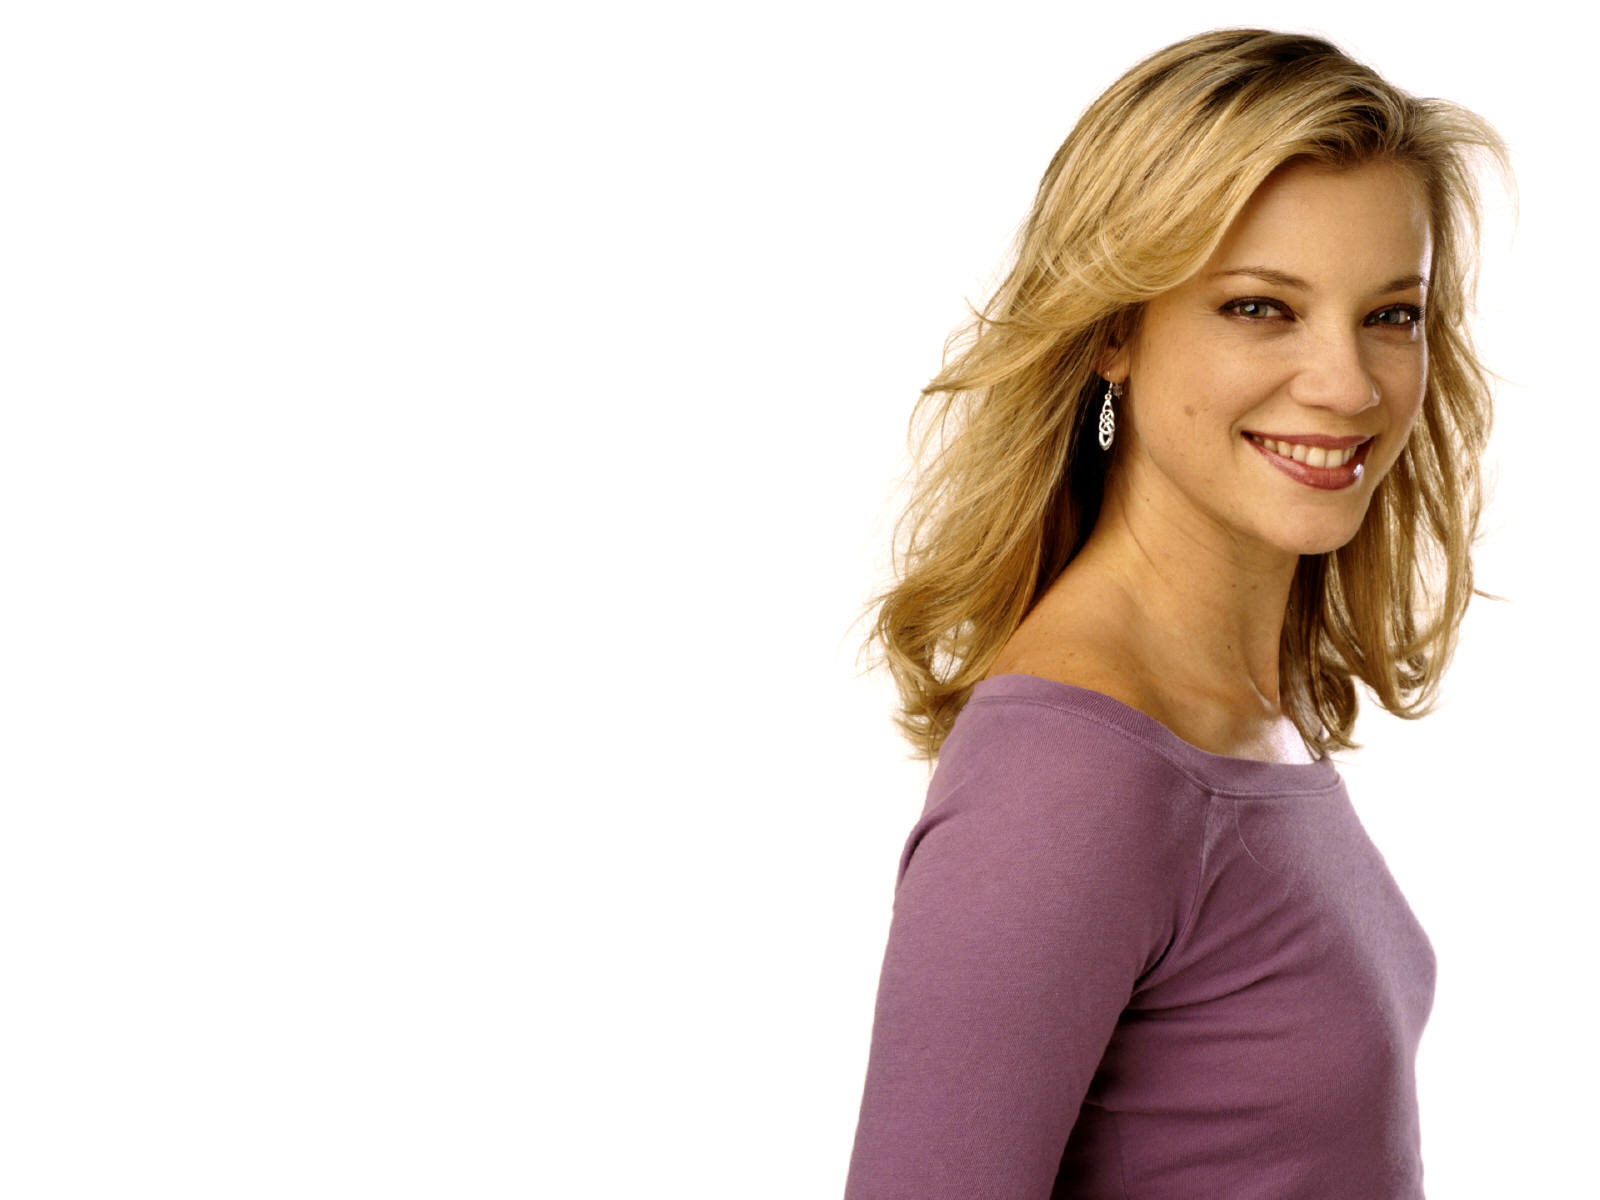 amy smart computer wallpaper 52124